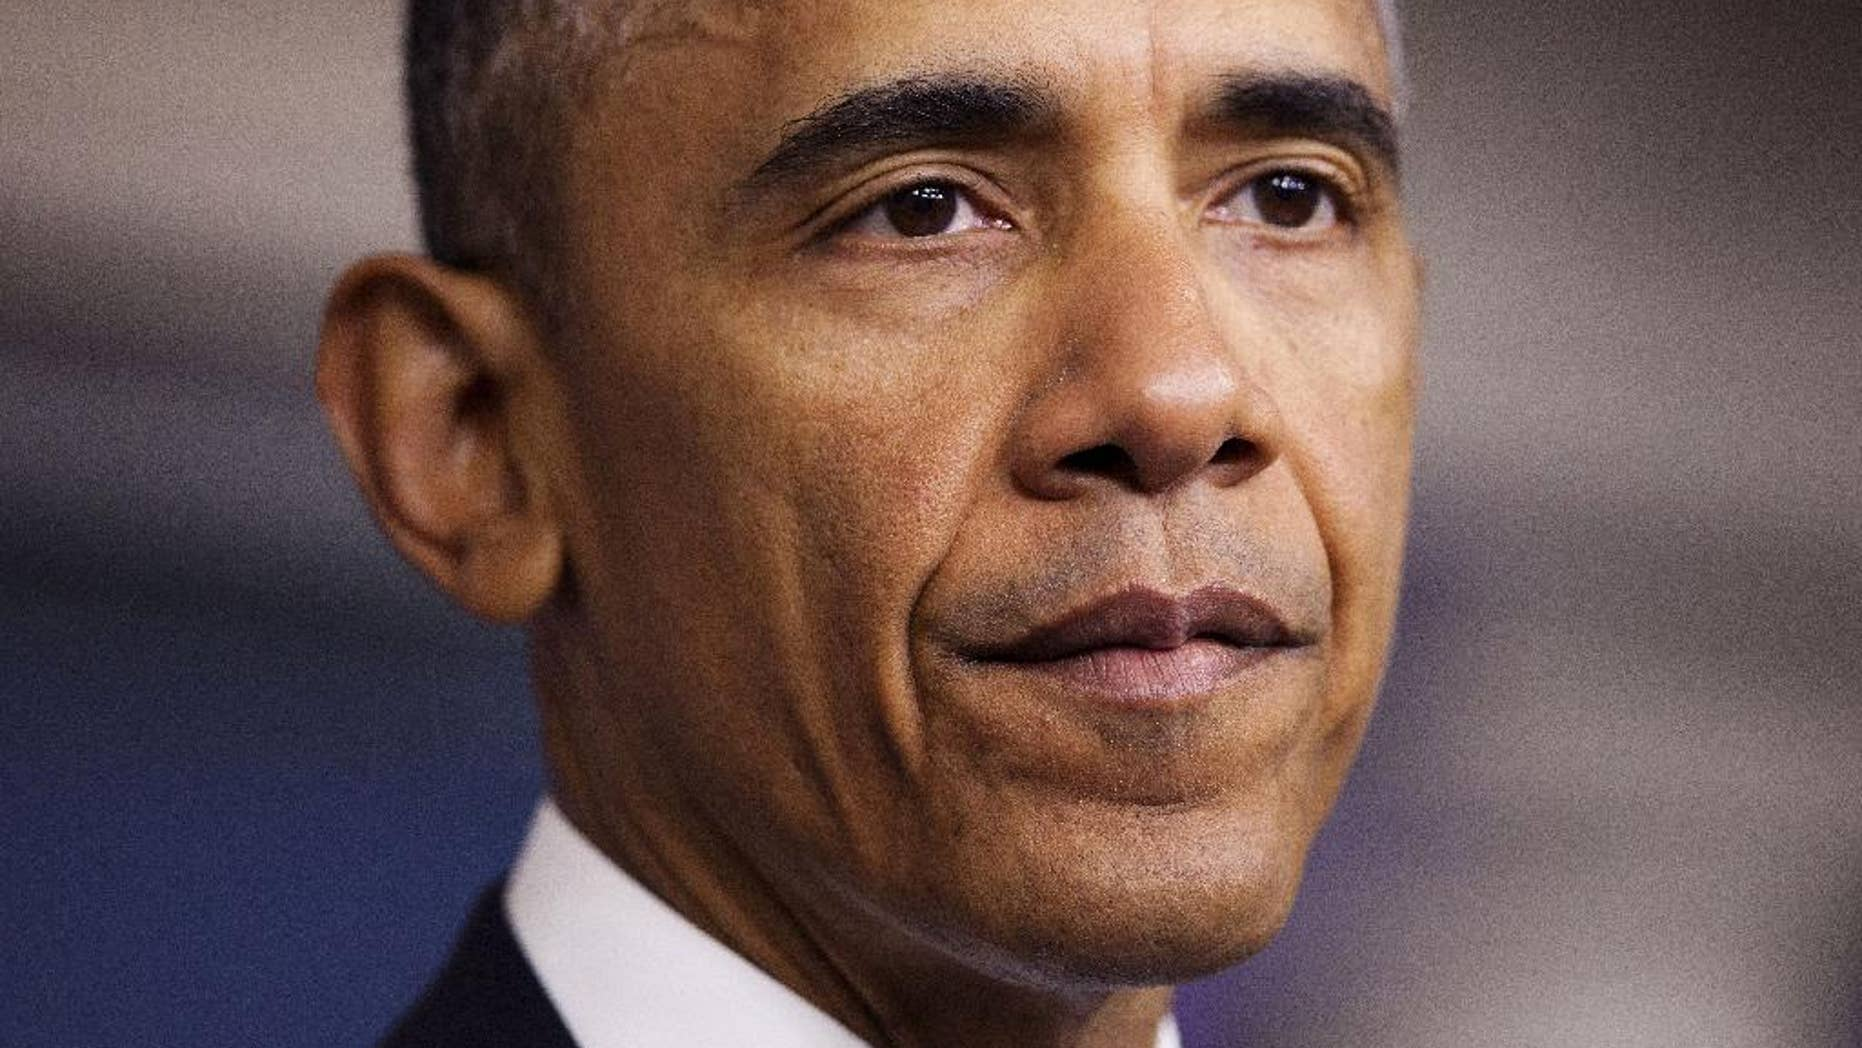 FILE - In this April 23, 2015 file photo, President Barack Obama pauses while speaking in the Brady Press Briefing Room of the White House in Washington, where he took full responsibility for deaths of American, Italian hostages, expresses apologies. The accidental killing of two hostages in a U.S. counterterrorism operation against al-Qaida has raised pressure on the White House to revise the nation's oft-criticized strategy for dealing with abducted Americans. A day after President Barack Obama apologized and took responsibility for the deaths of American Warren Weinstein and Italian Giovanni Lo Porto, administration officials said Friday that a nearly yearlong, interagency review of the policy is to be completed this spring. (AP Photo/Pablo Martinez Monsivais, File)